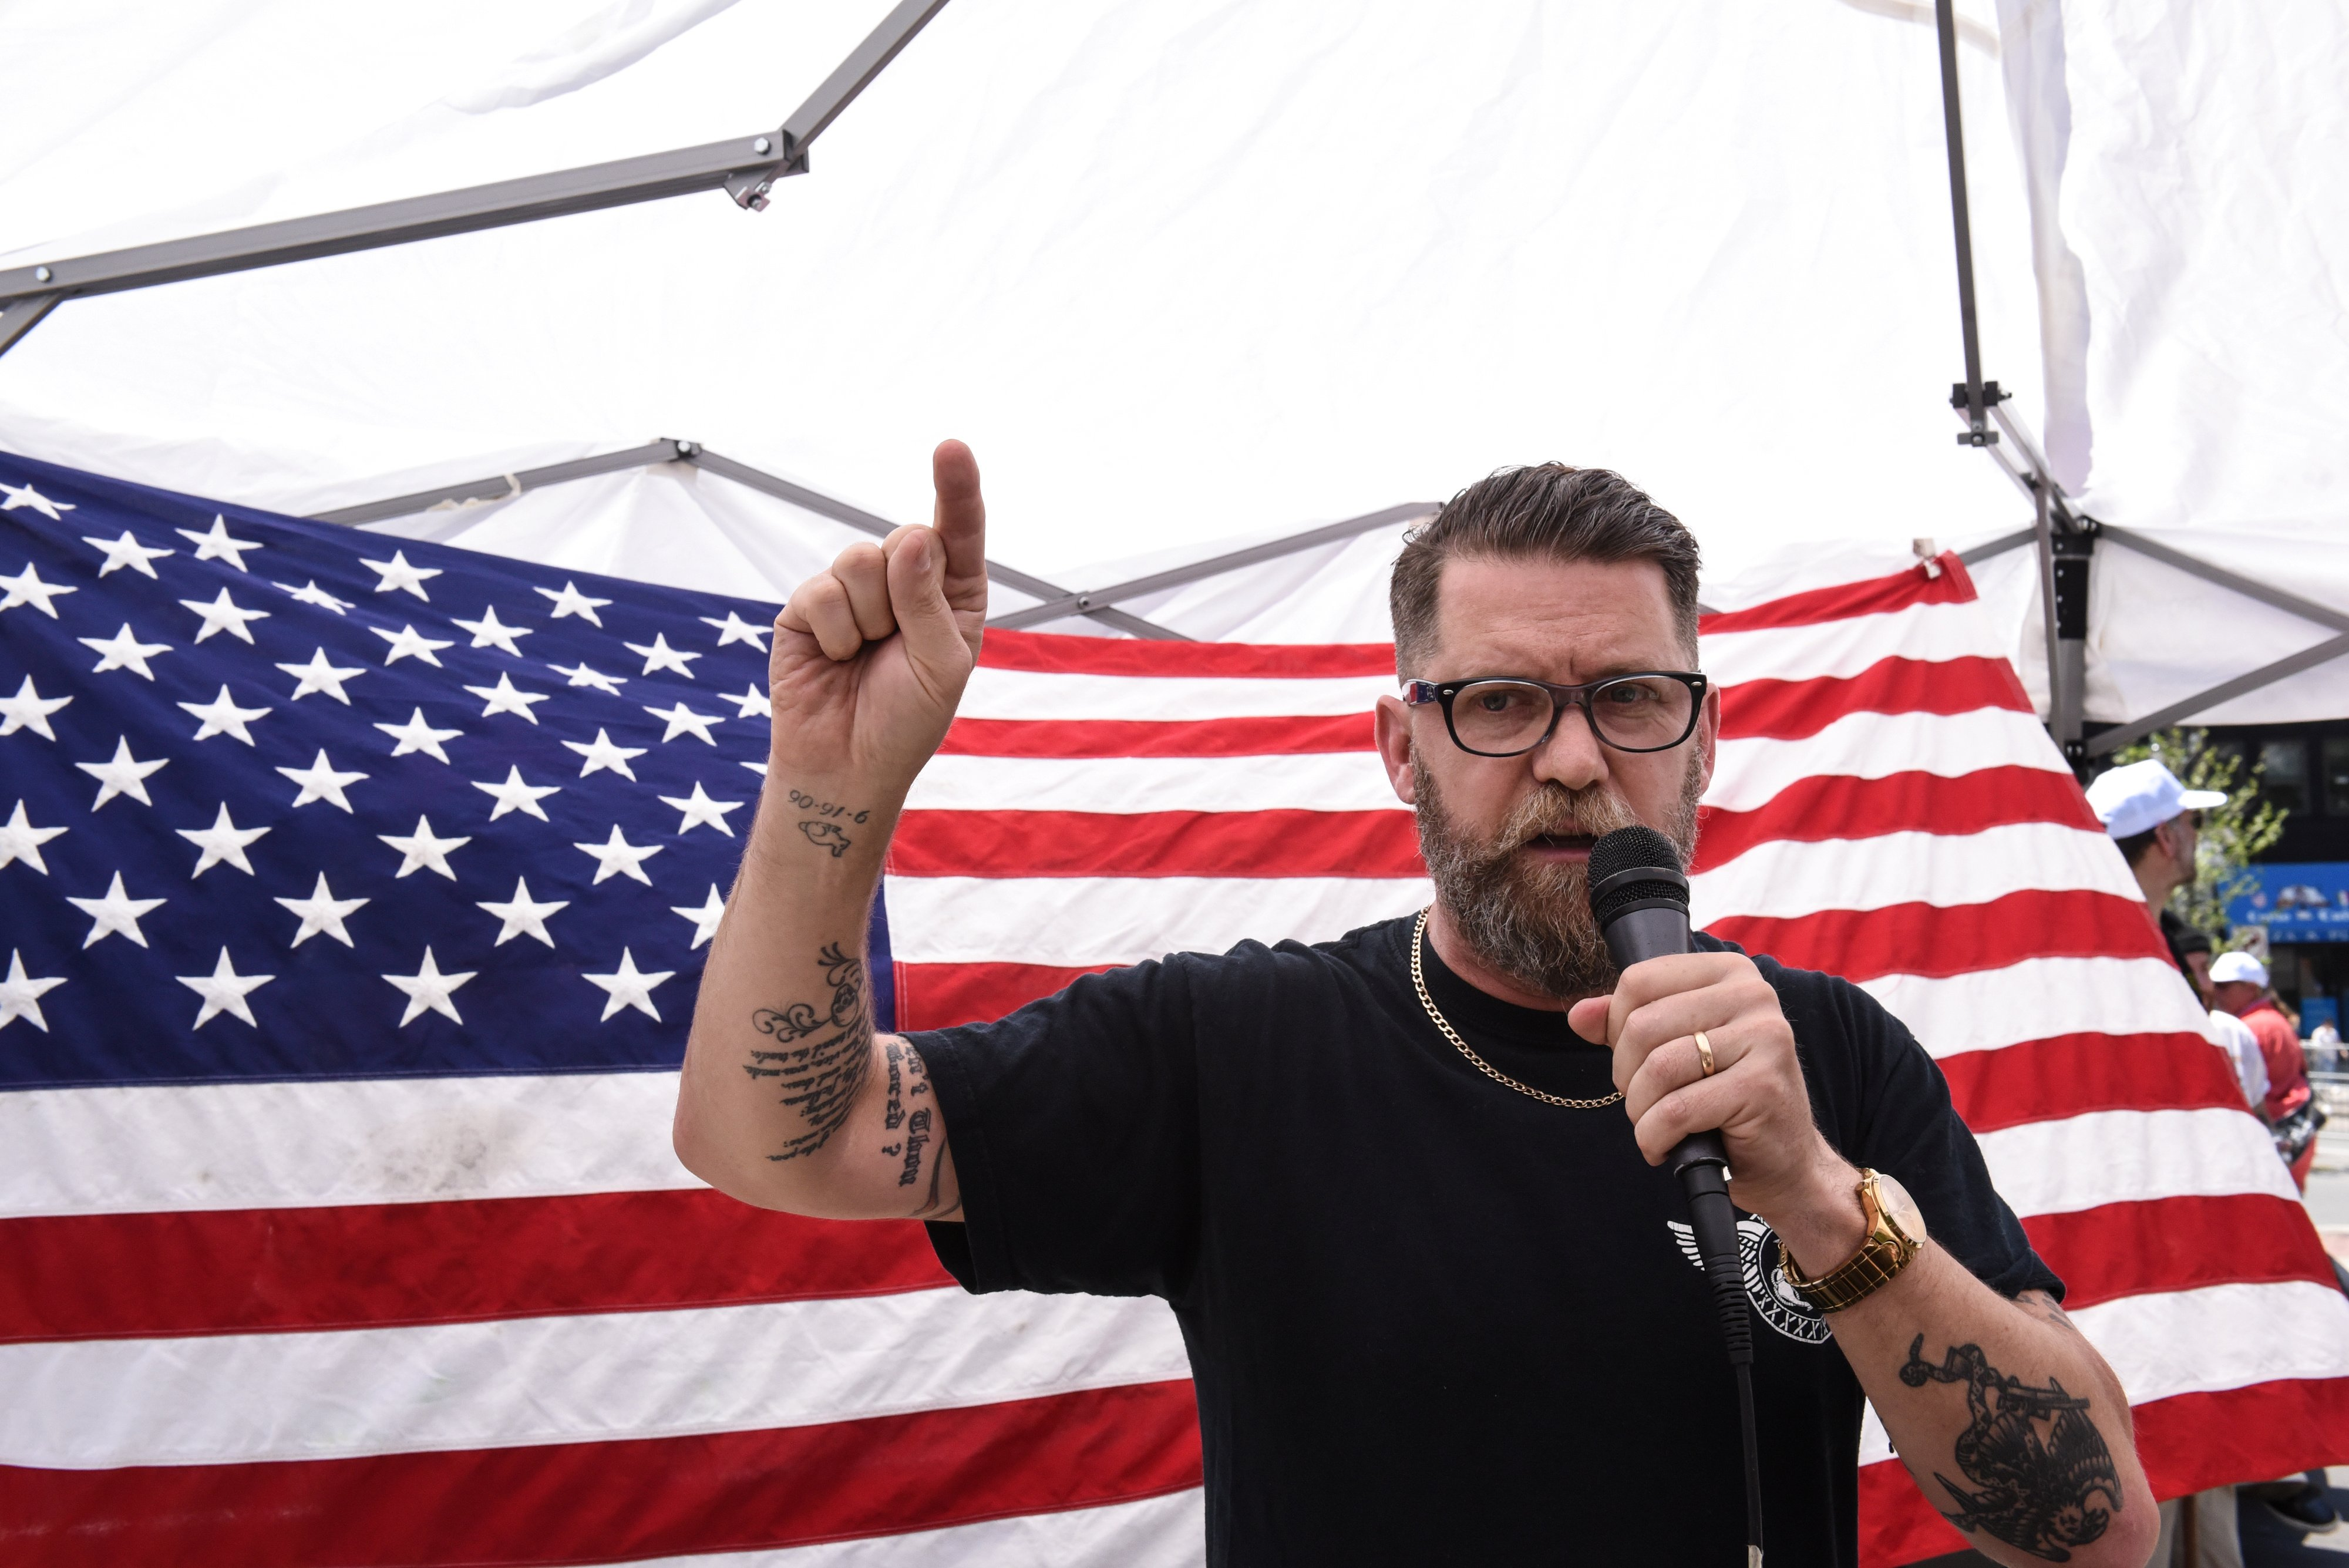 proud boys founder distancing himself from extremist organization